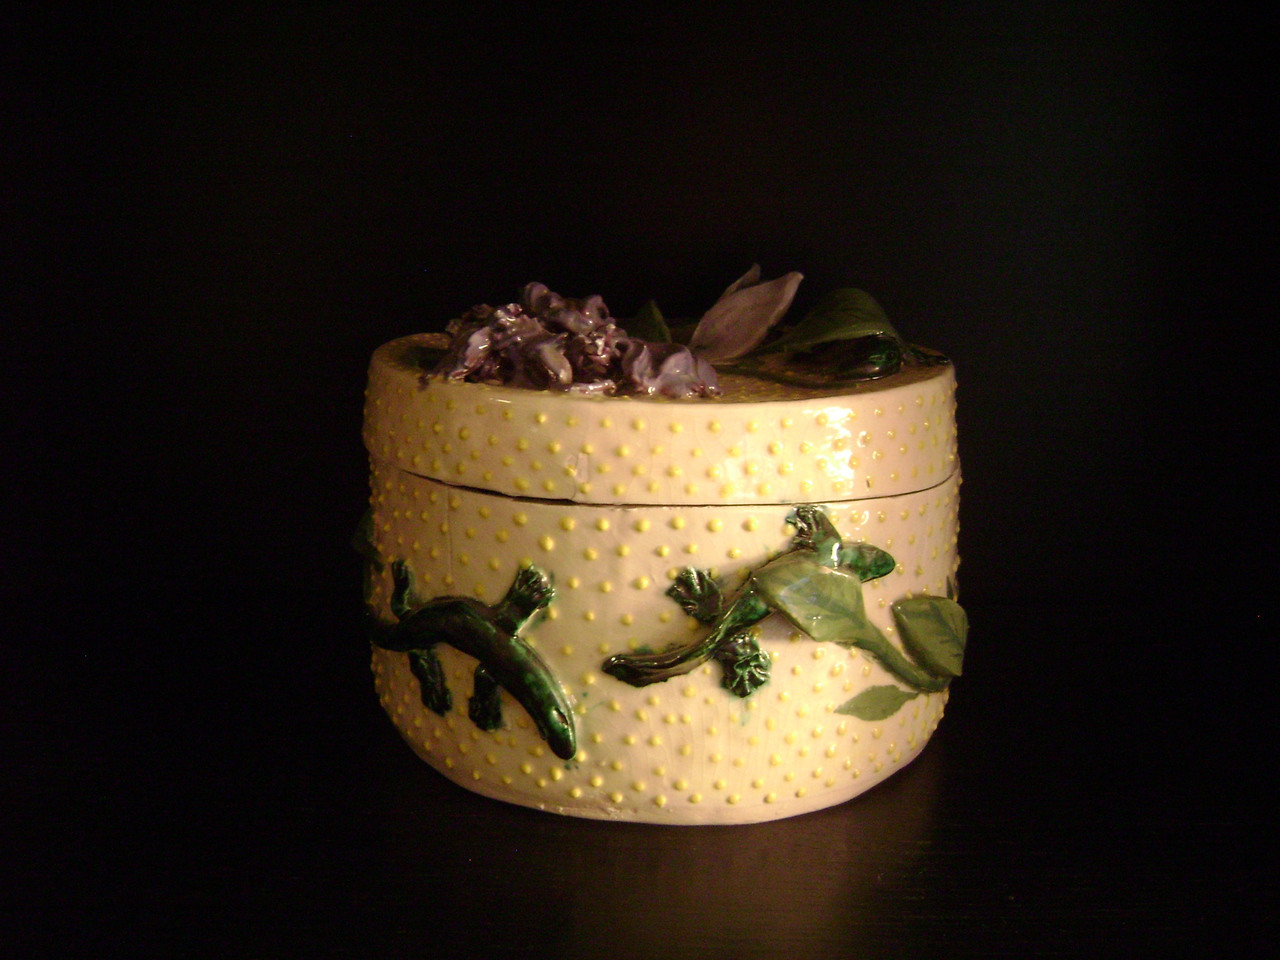 Tamara S Gordon- Lizard Pot # 2 with lid